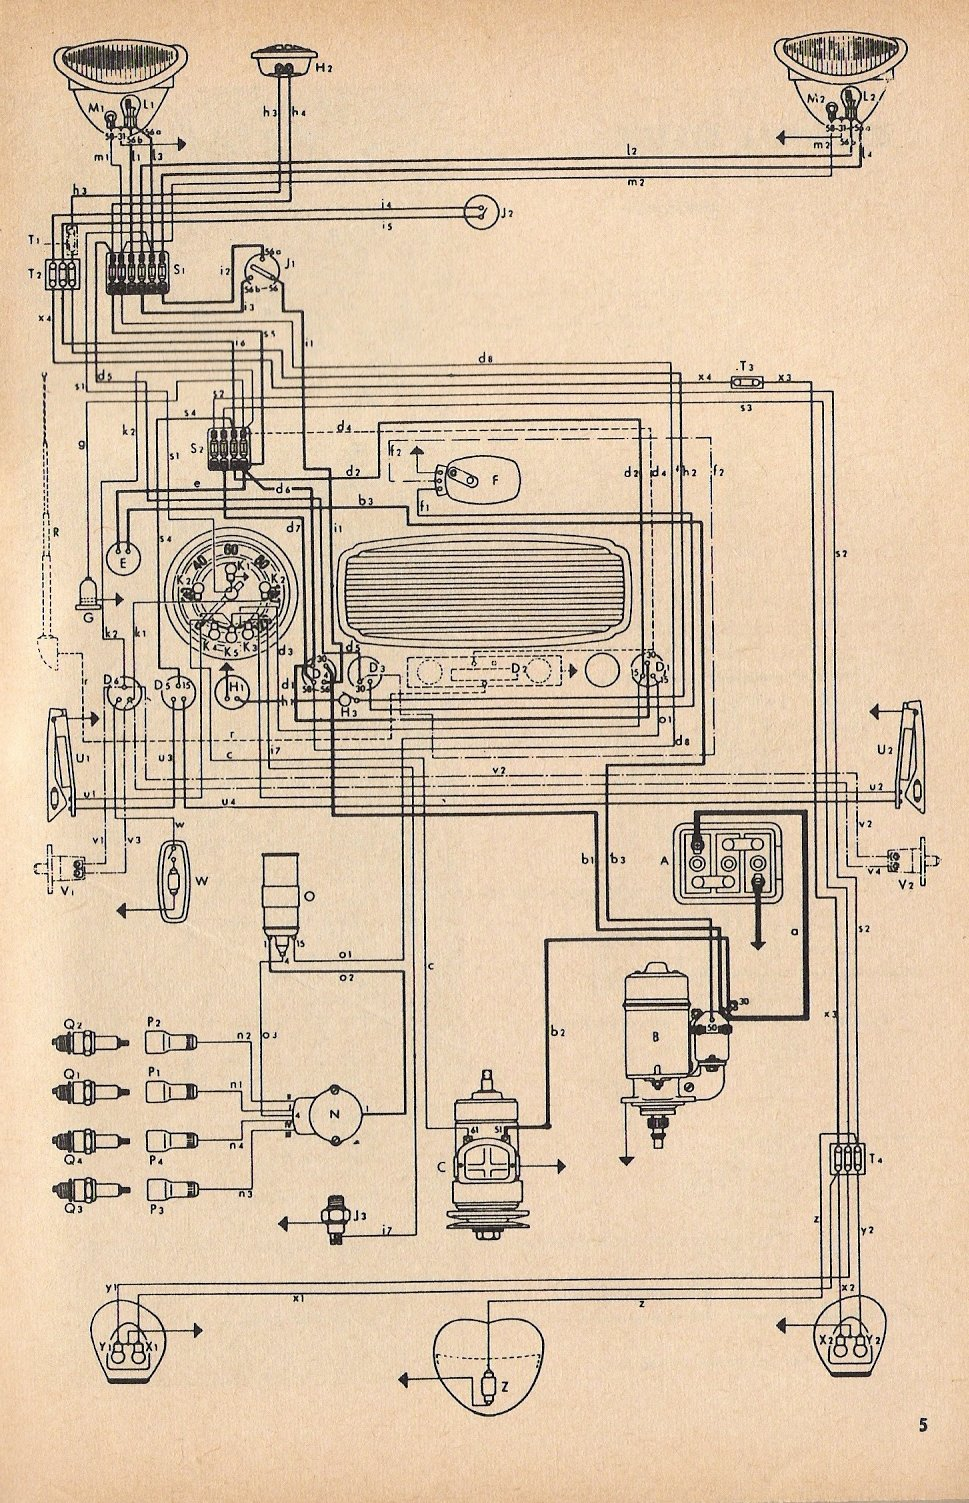 hight resolution of thesamba com type 1 wiring diagrams 1968 vw beetle wiring diagram charging system